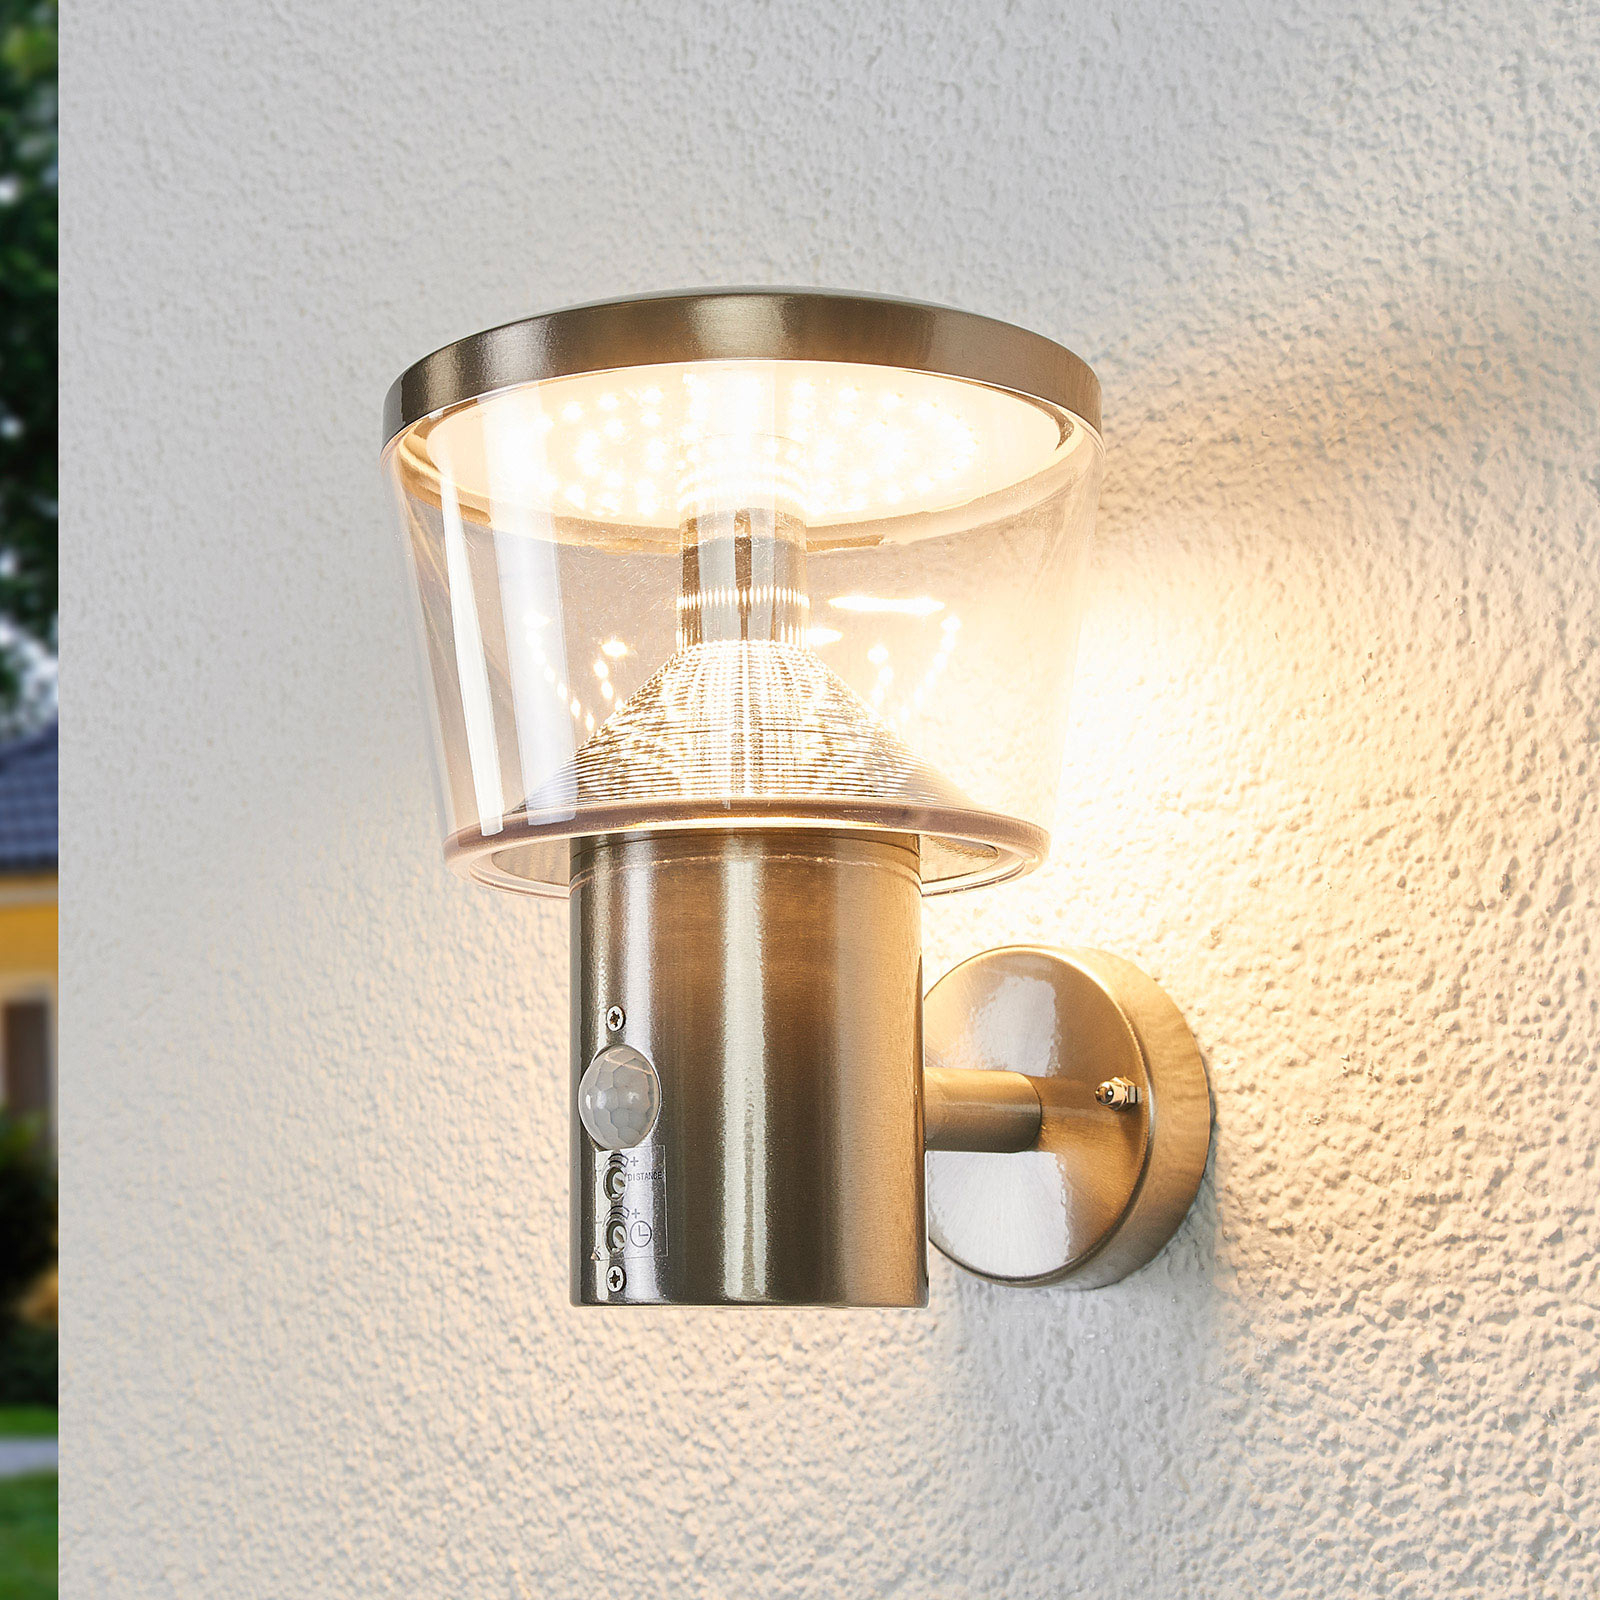 Antje sensor outdoor wall light with LEDs_9988174_1